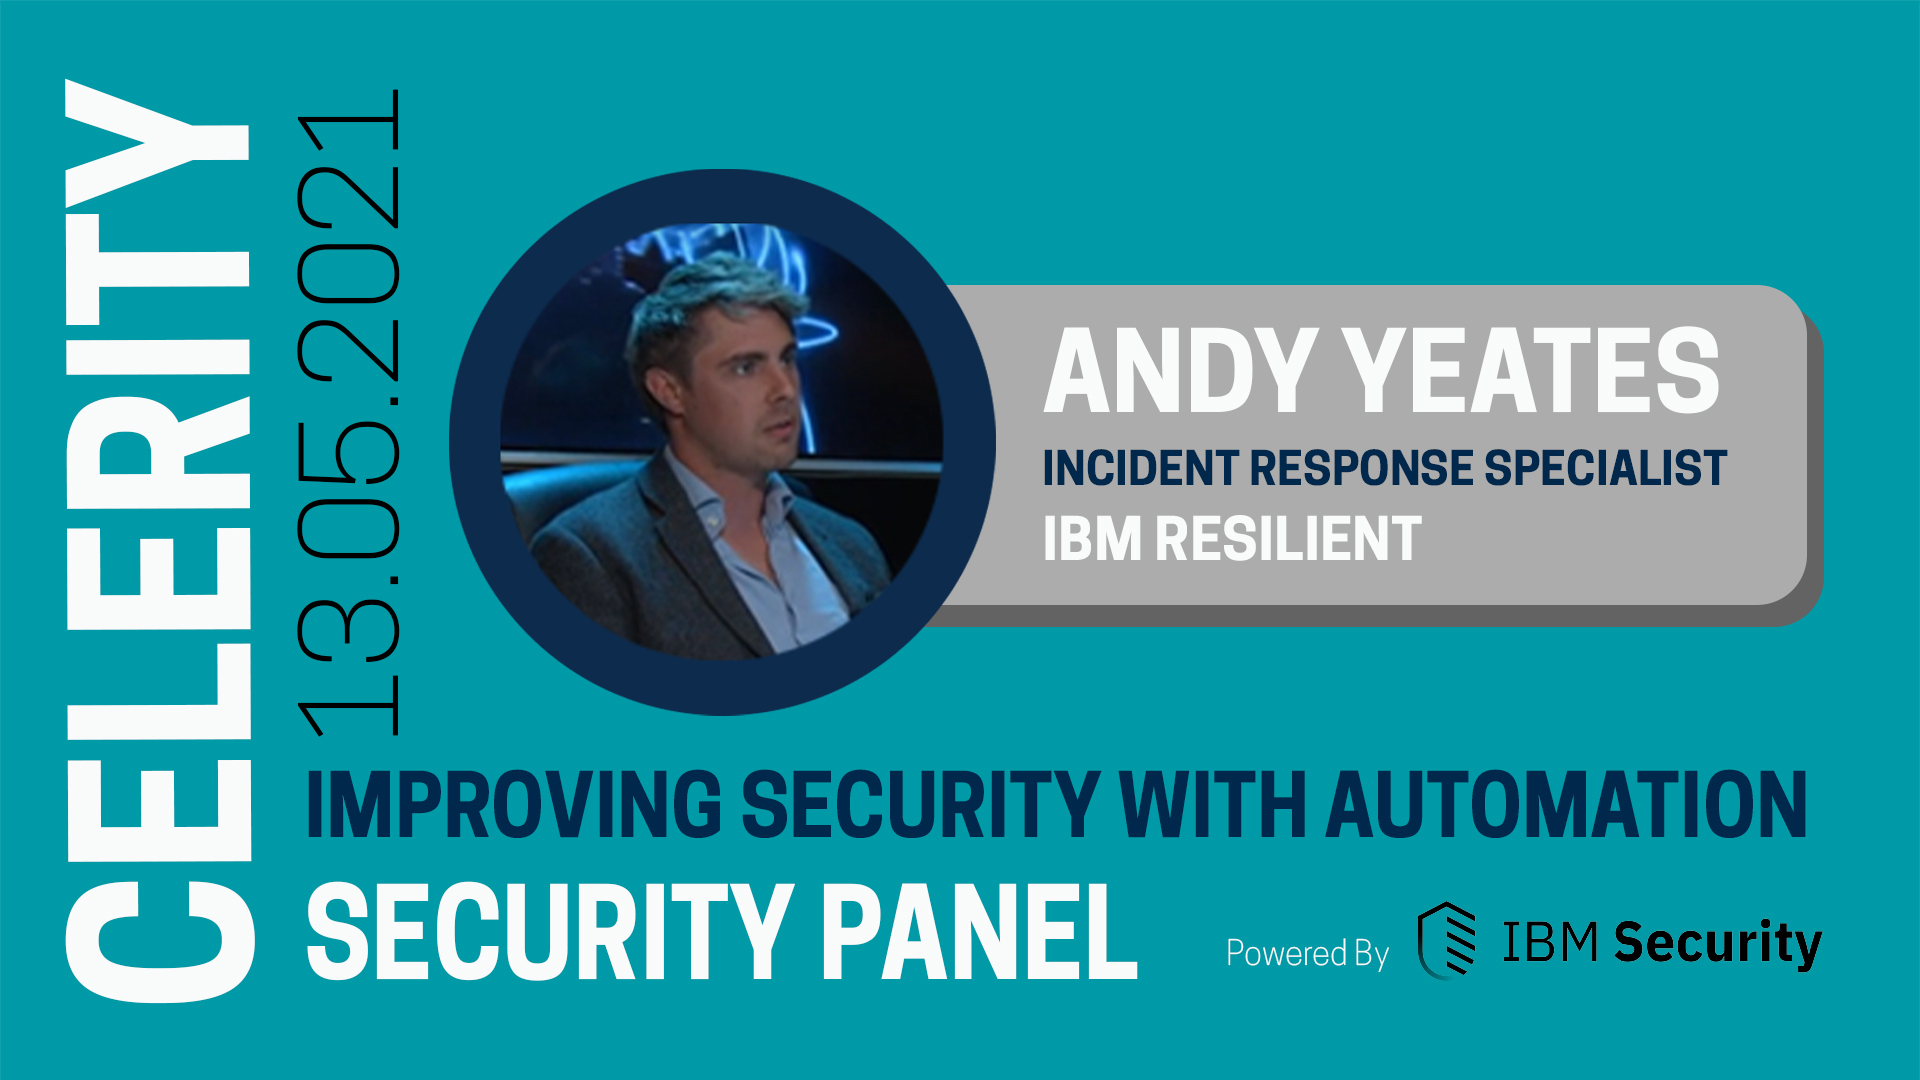 Security Panel - Improving Security with Automation